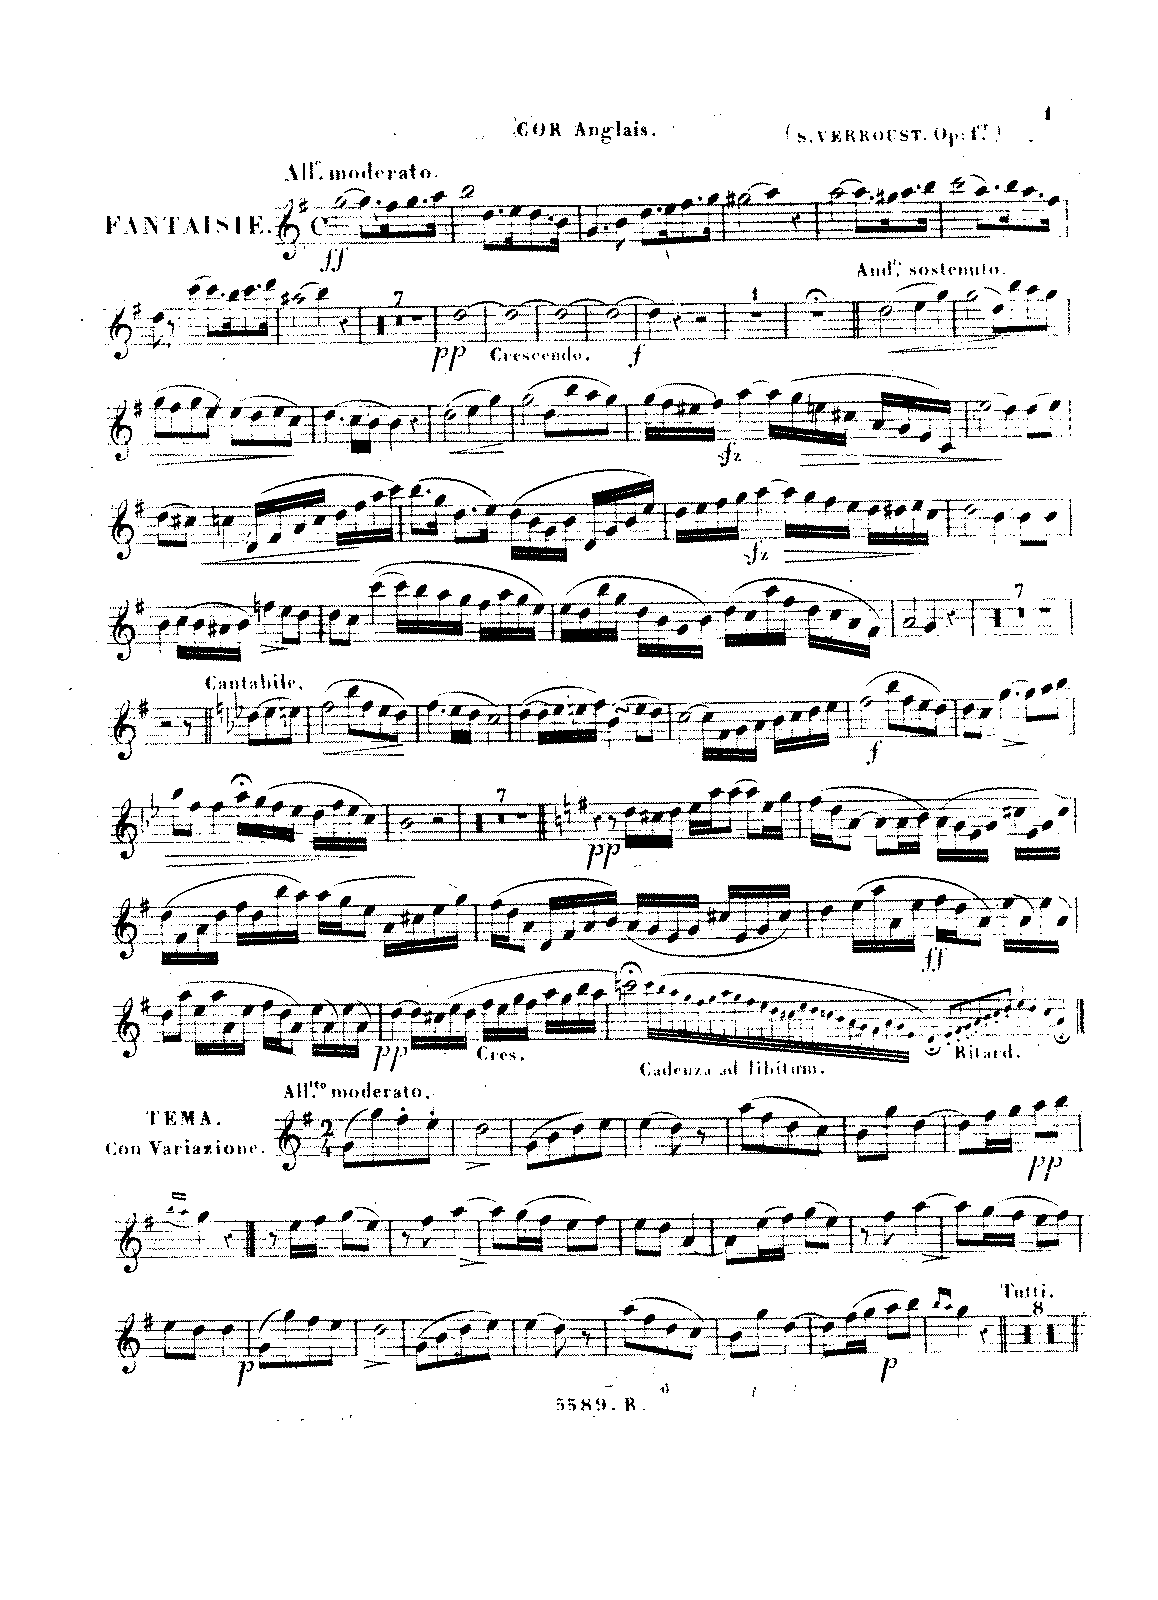 PMLP53768-Verroust - Fantaisie originale, Op. 1 (english horn and piano).pdf